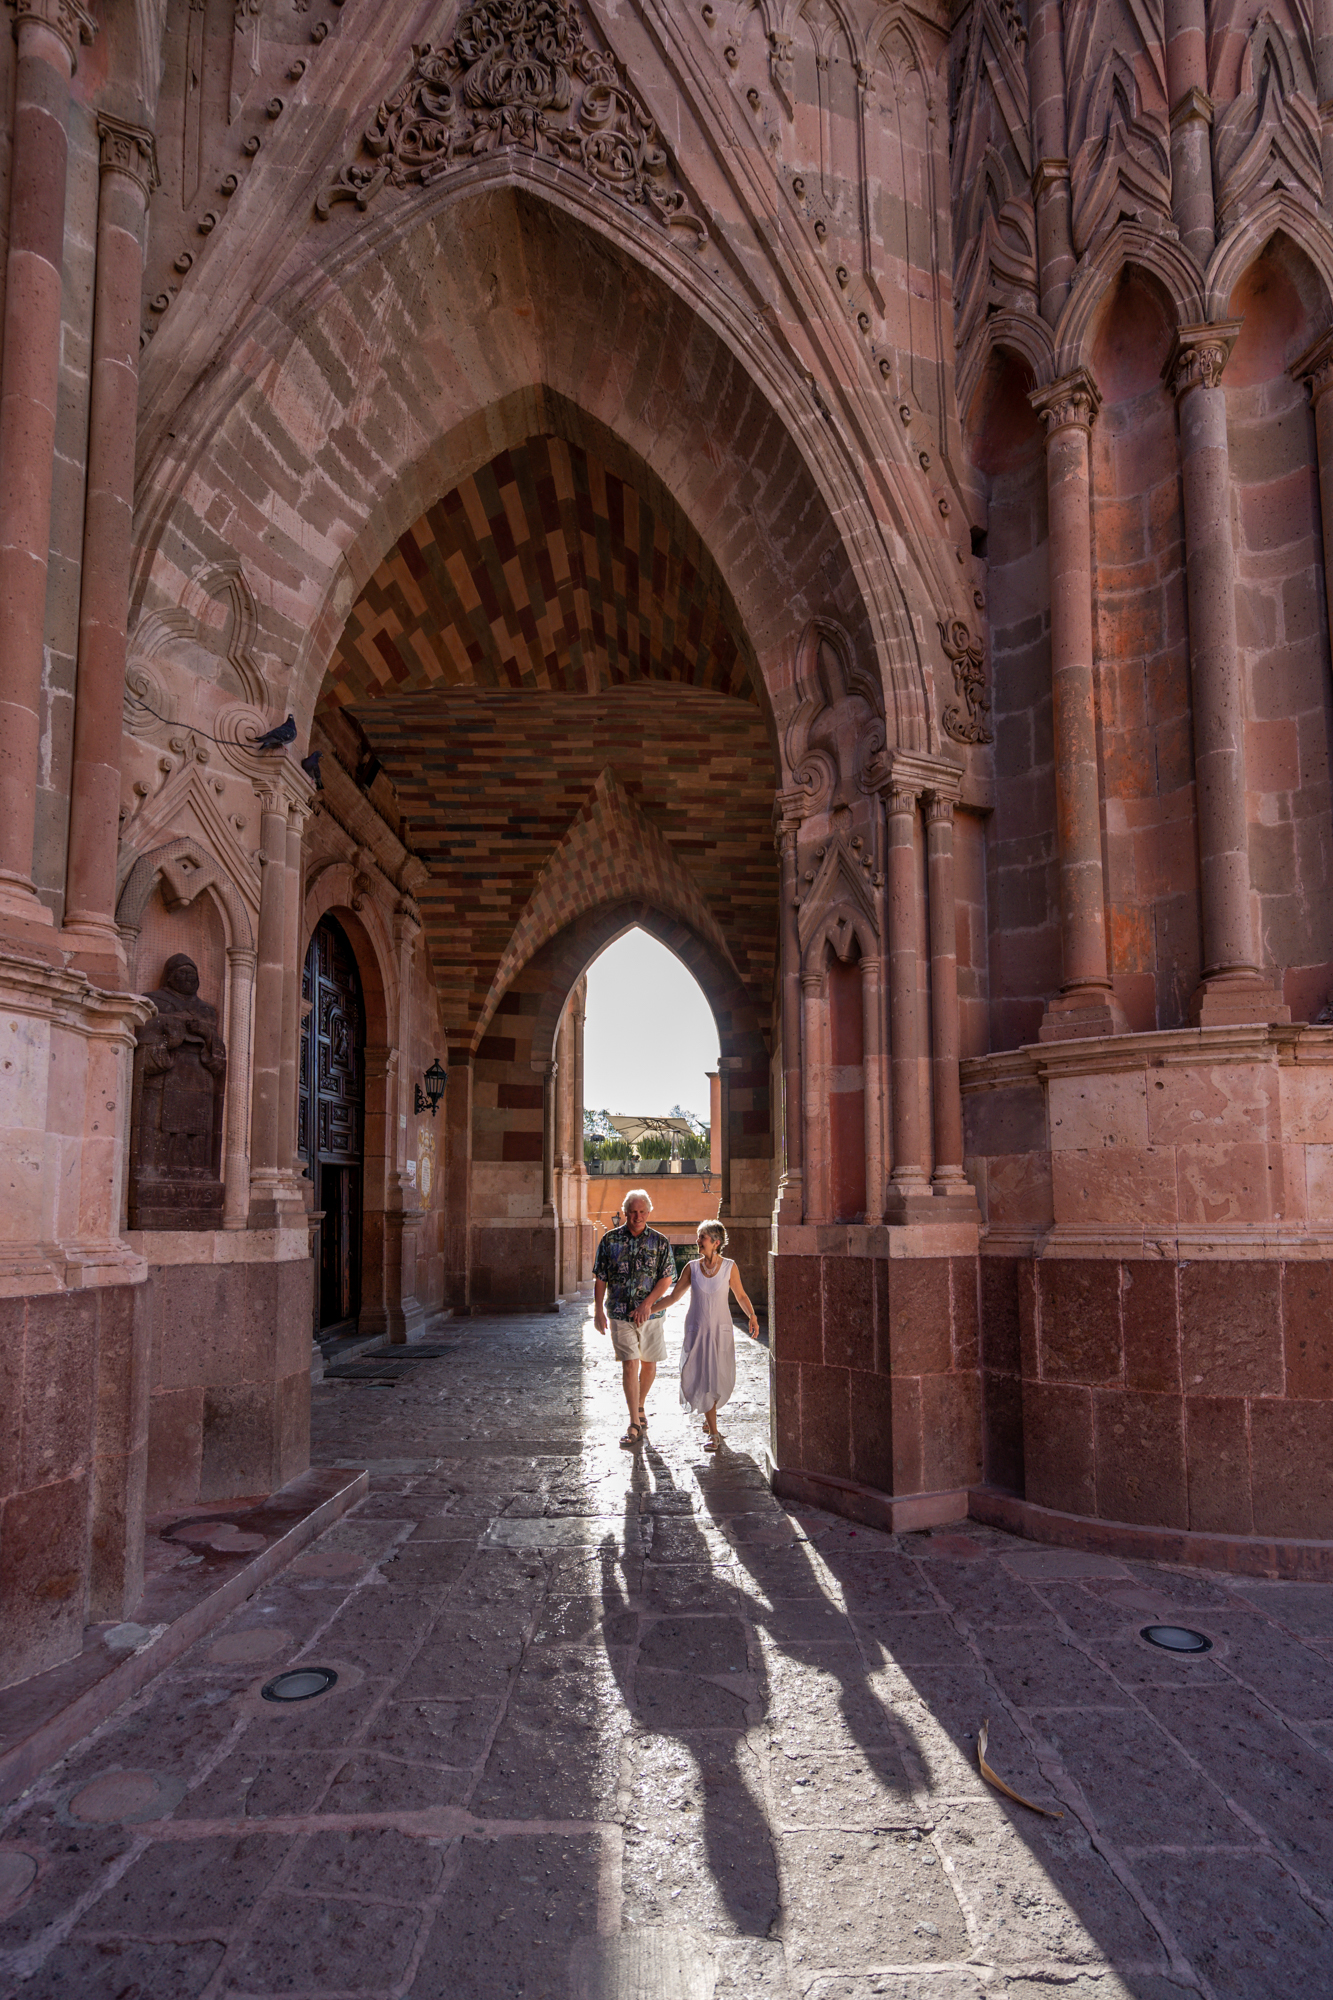 Photoshoot session in San Miguel de Allende with Suzanne and Leo-1.jpg